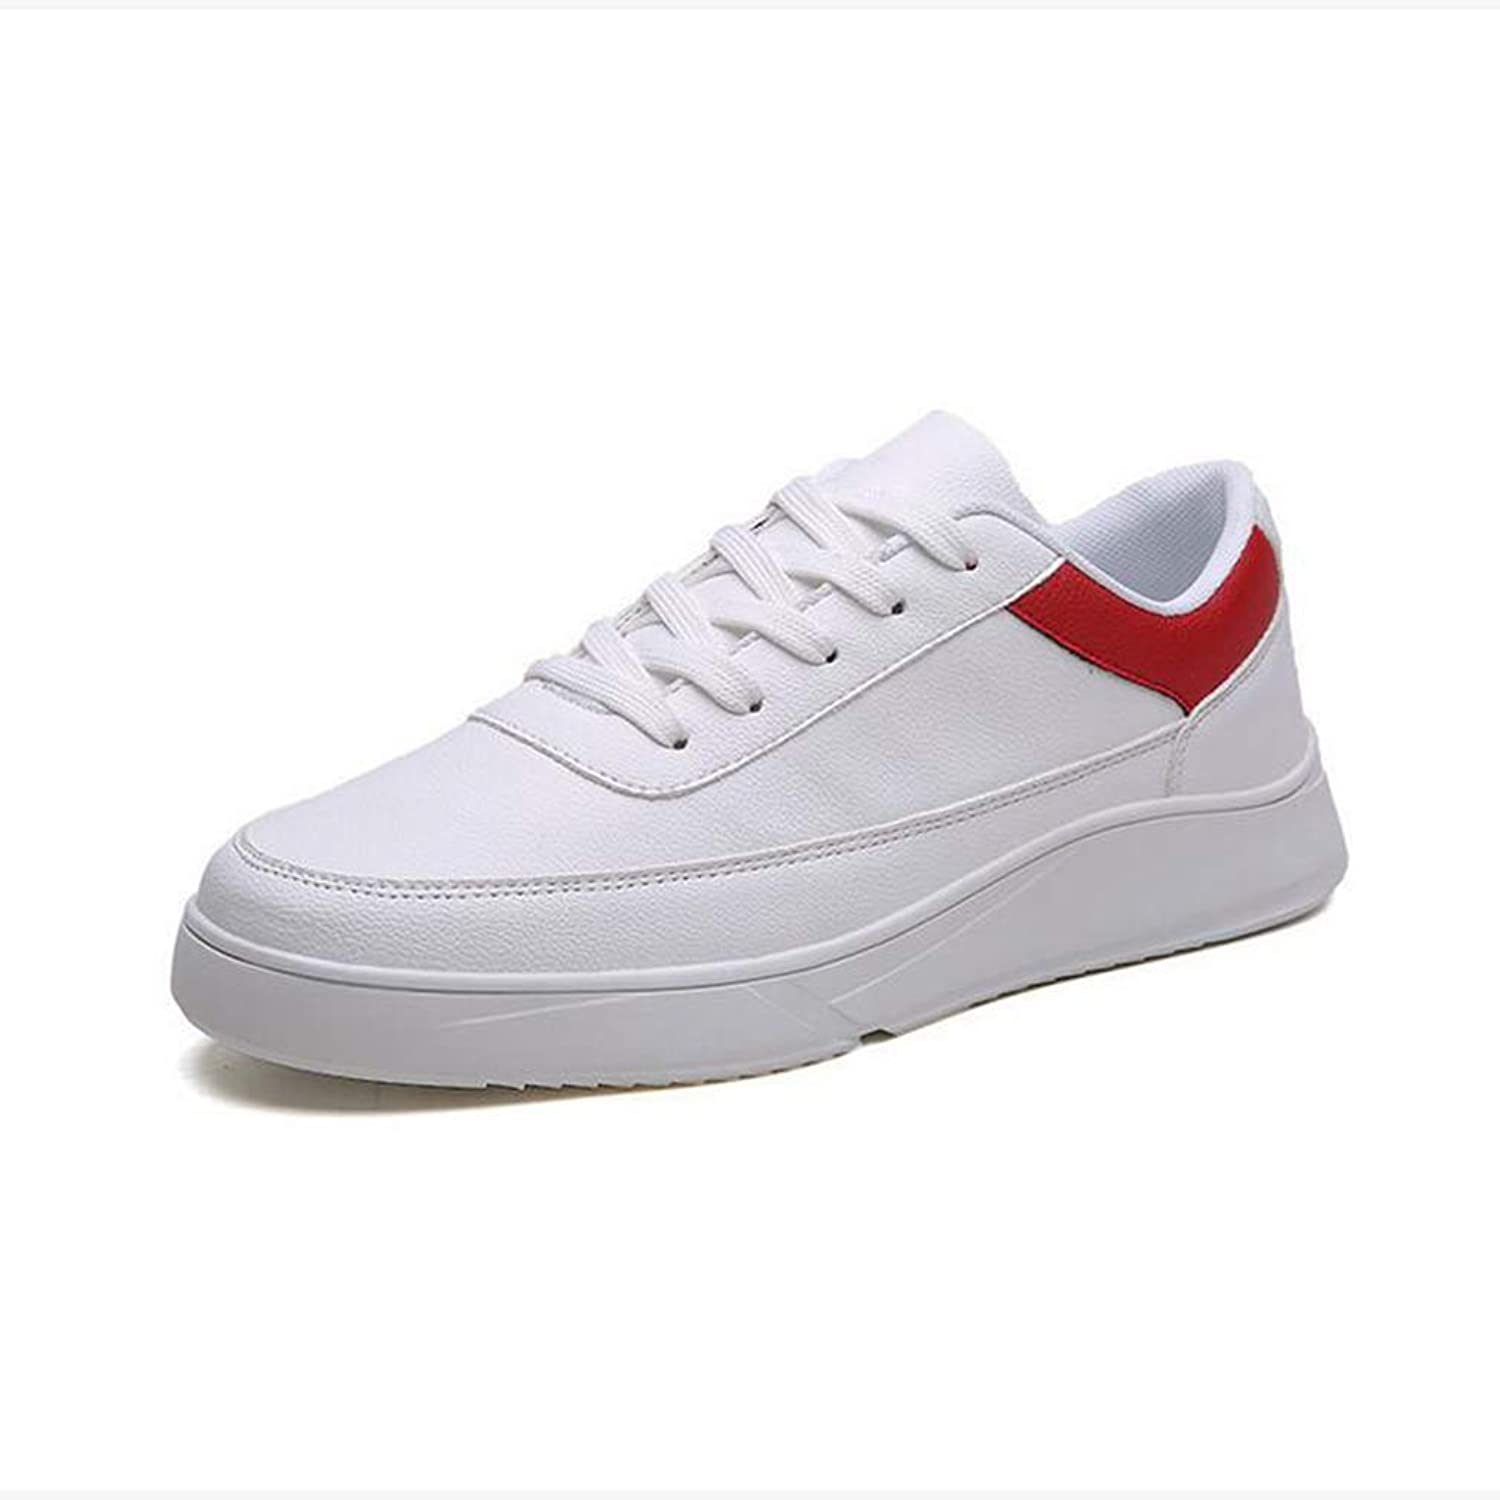 Y-H Men's shoes, Spring Fall 2019 New Casual Sneakers,Student Flat Deck shoes Canvas shoes, Walking Gym shoes,whitered,41